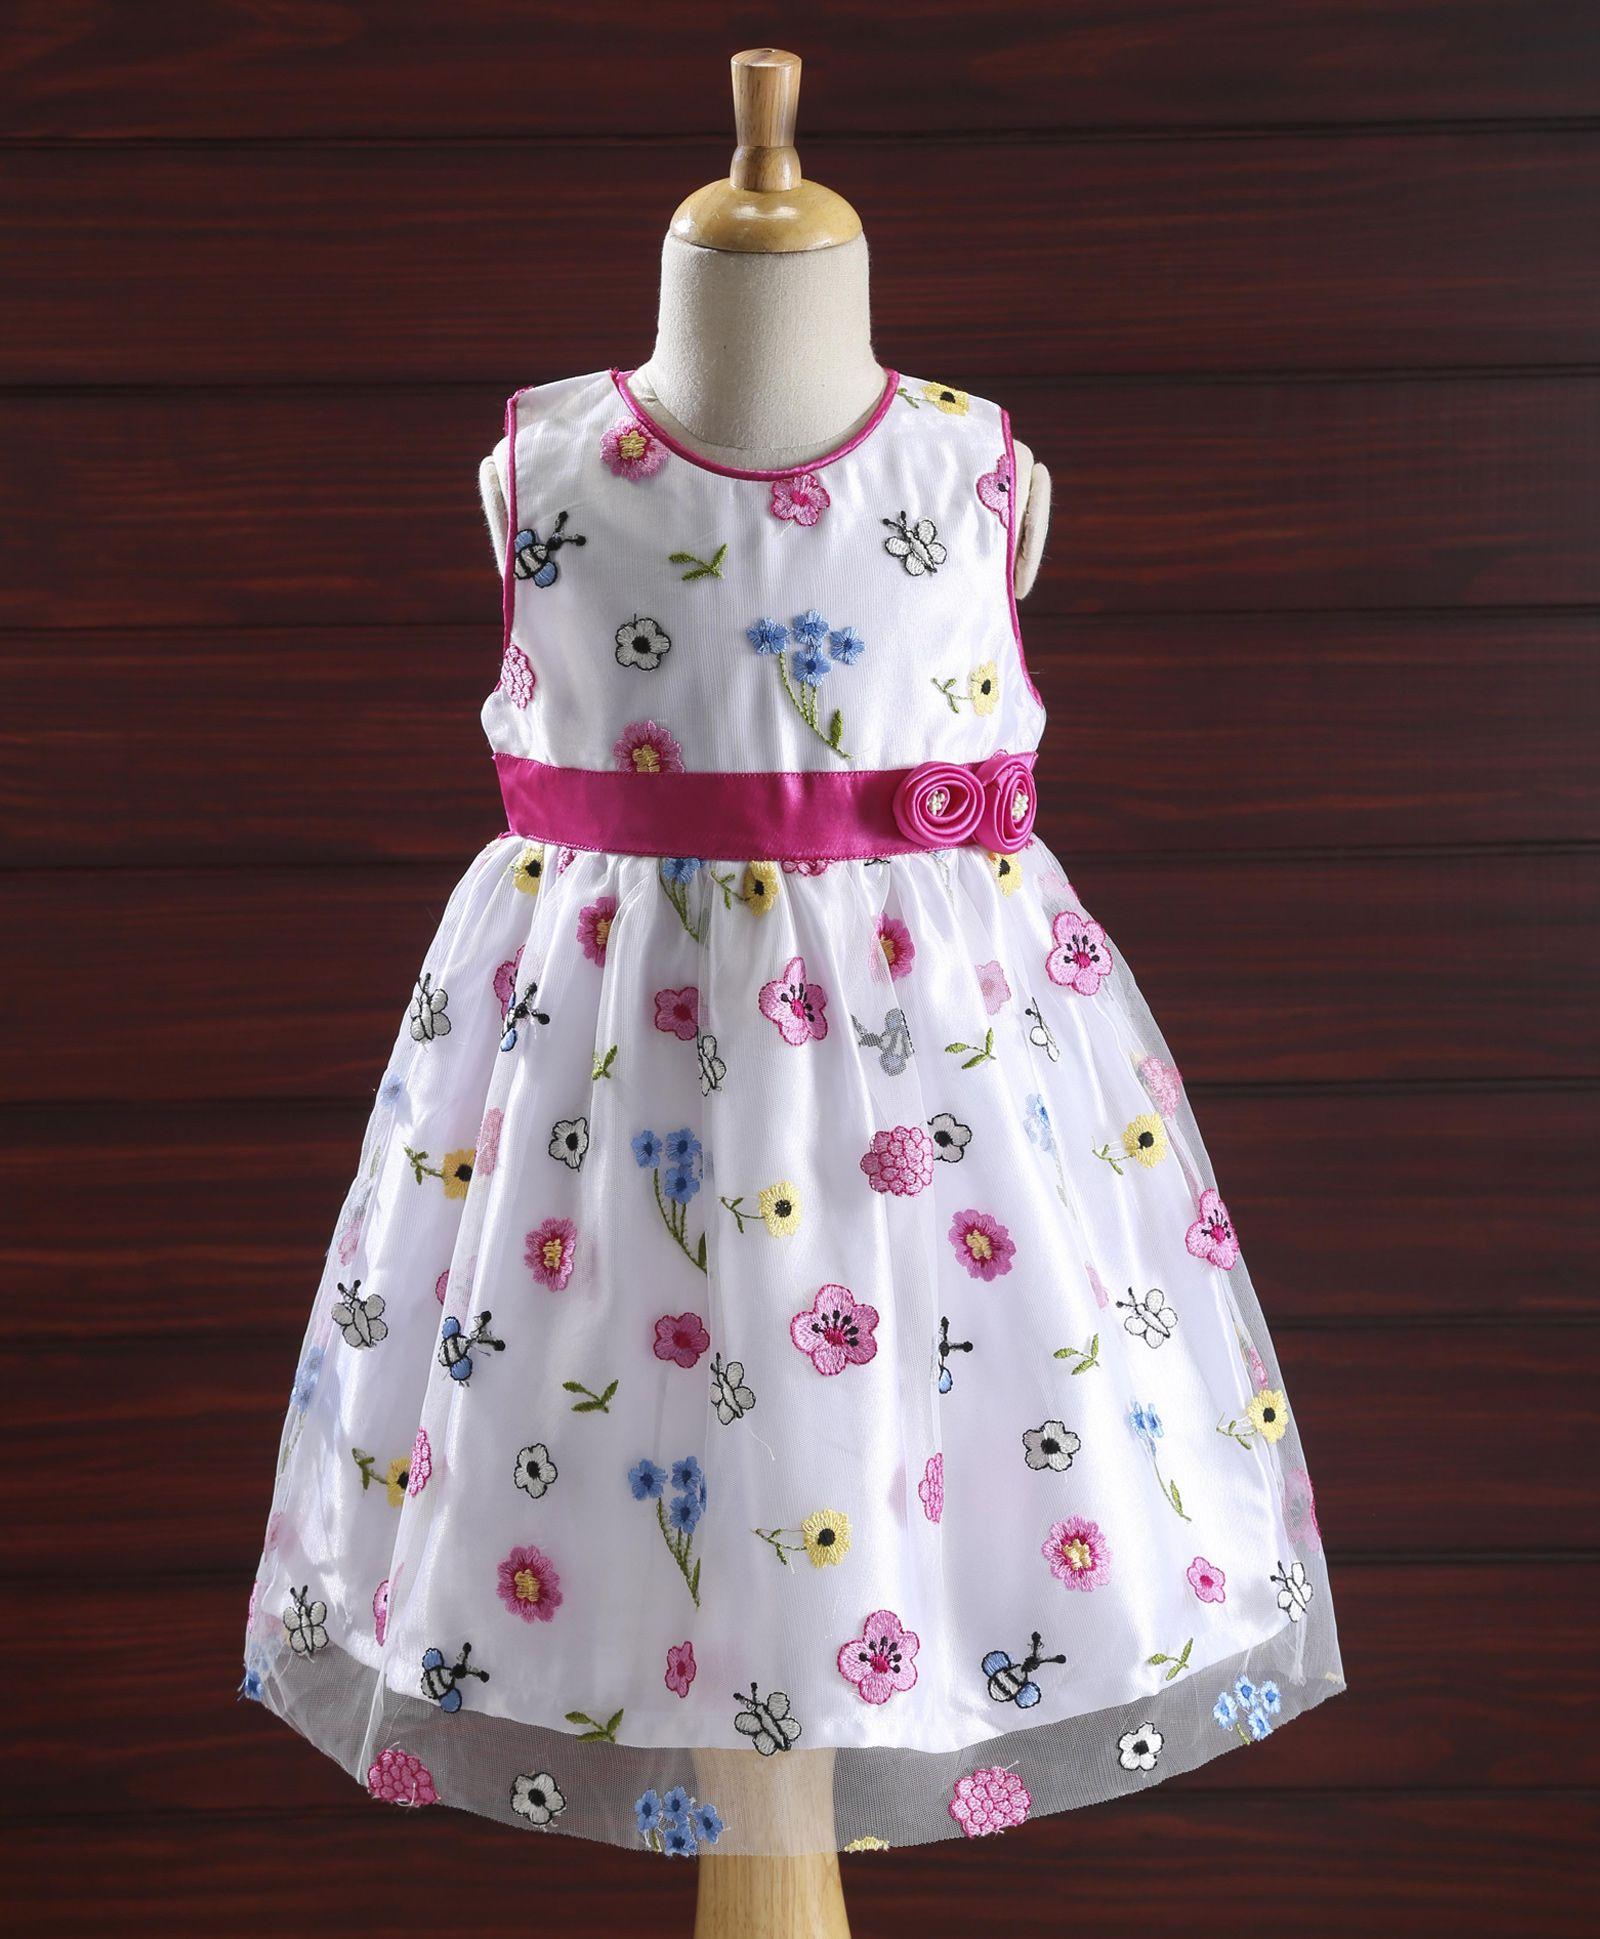 acf0e7830 Buy Yellow Duck Sleeveless Party Dress Floral Embroidery Pink for ...